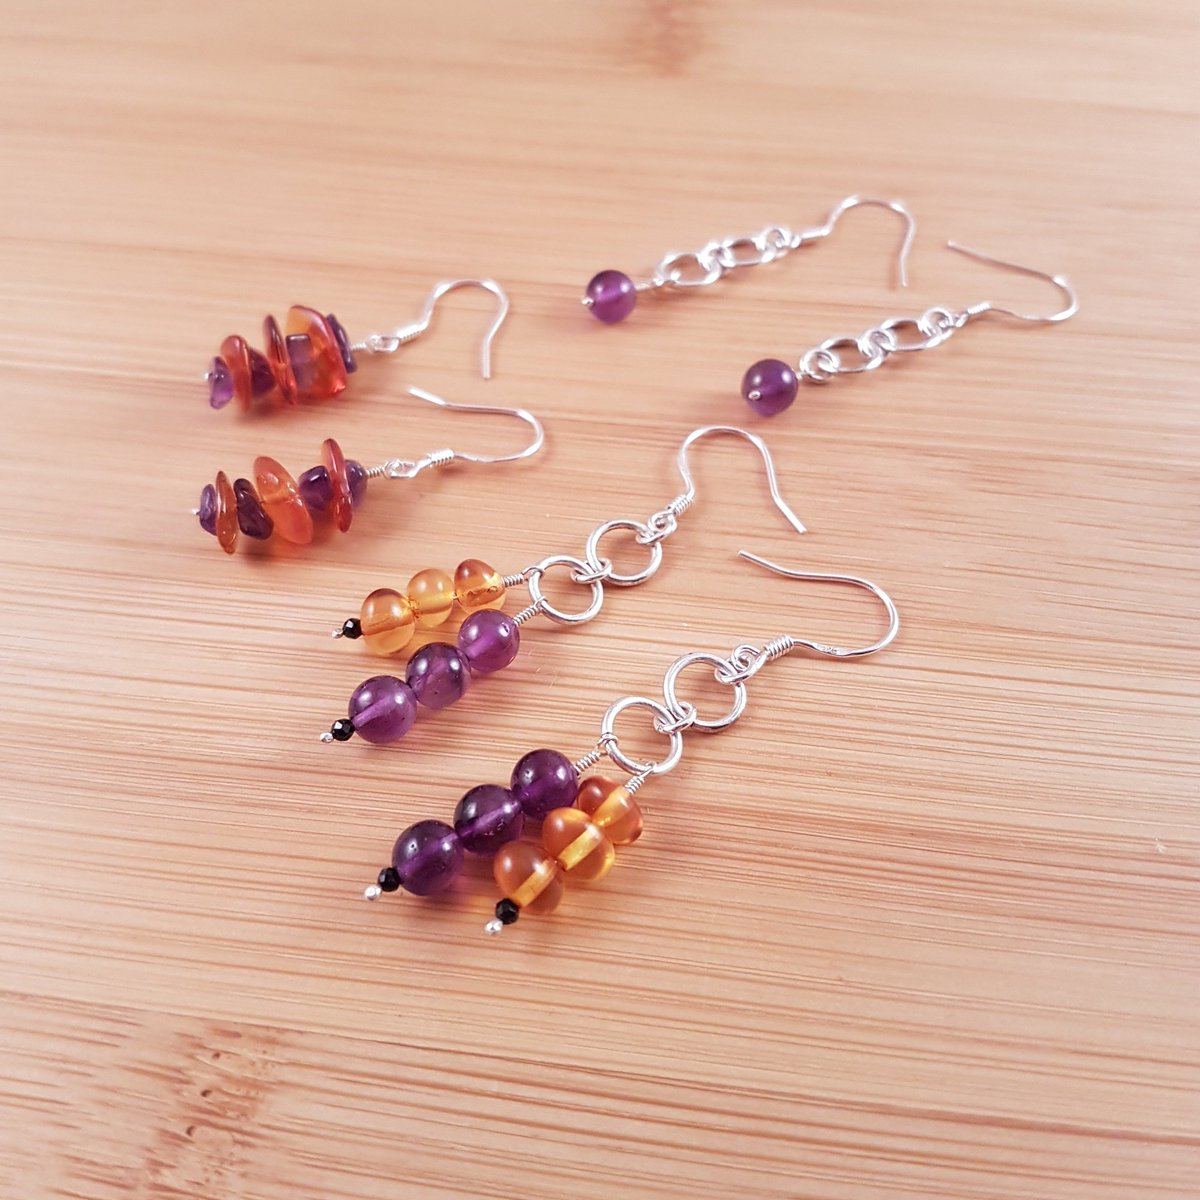 Amethyst and amber earrings laid out